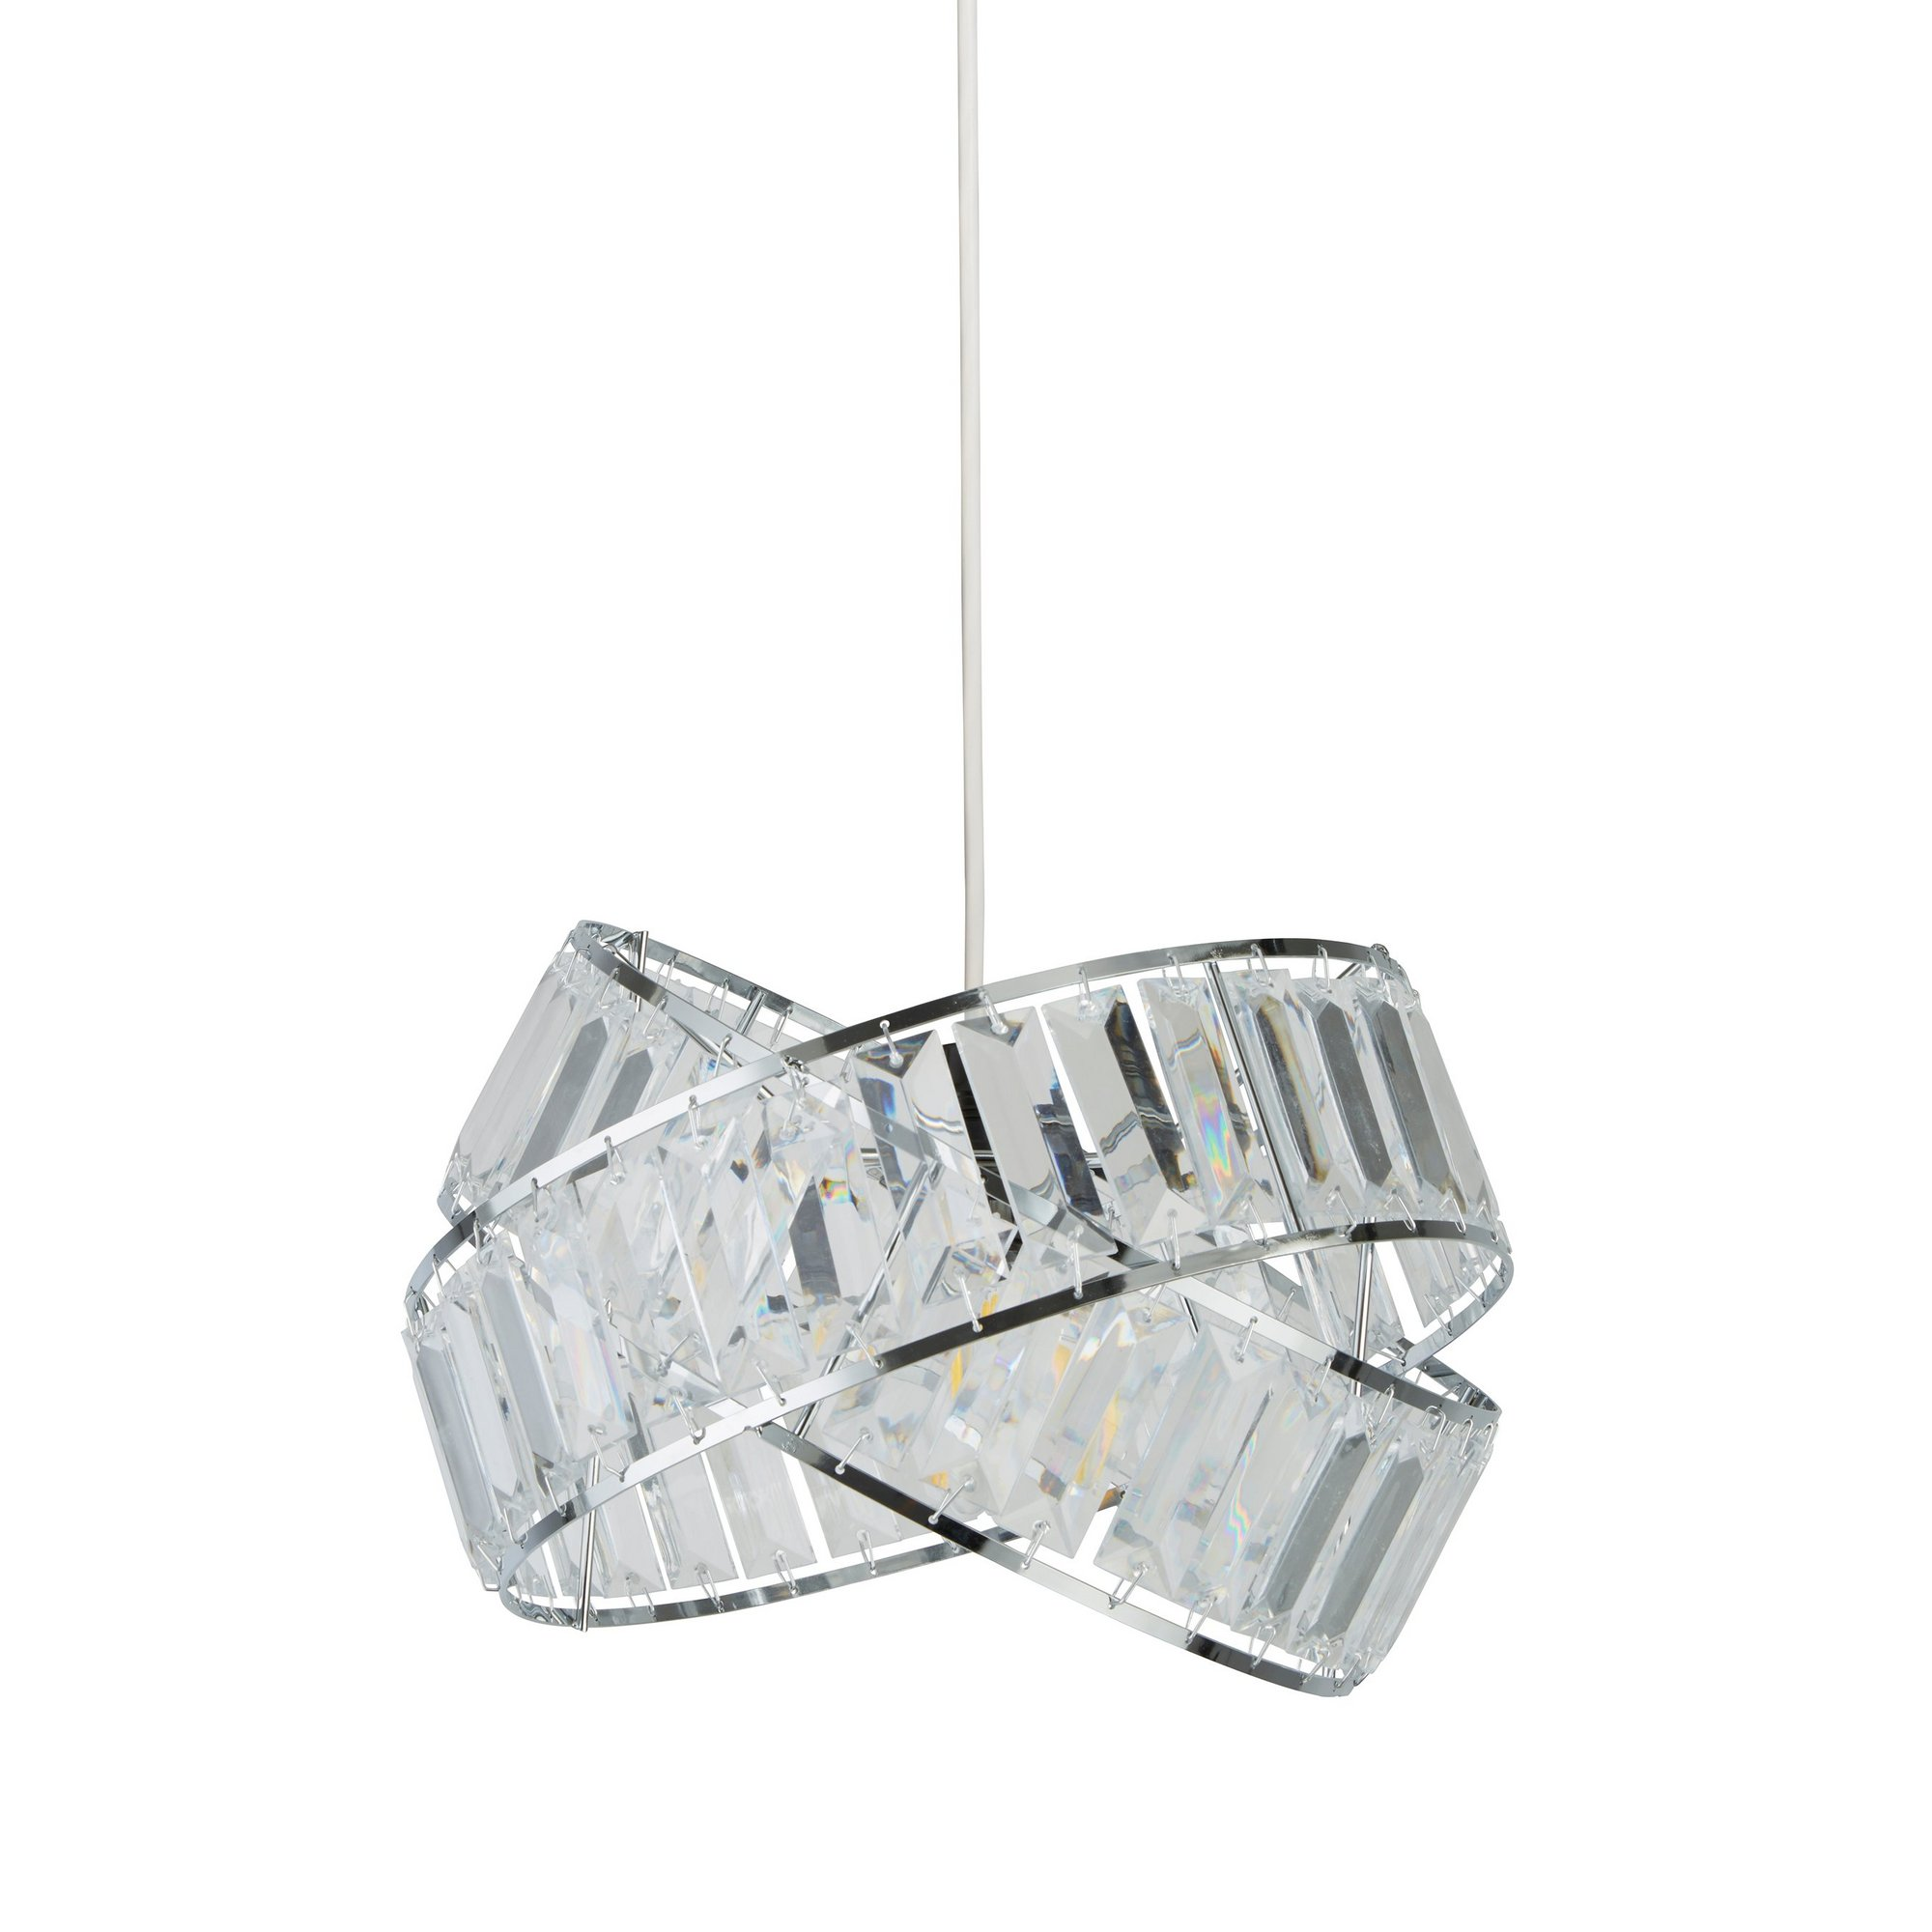 Image of Acrylic Wrap Easy Fit Light Shade